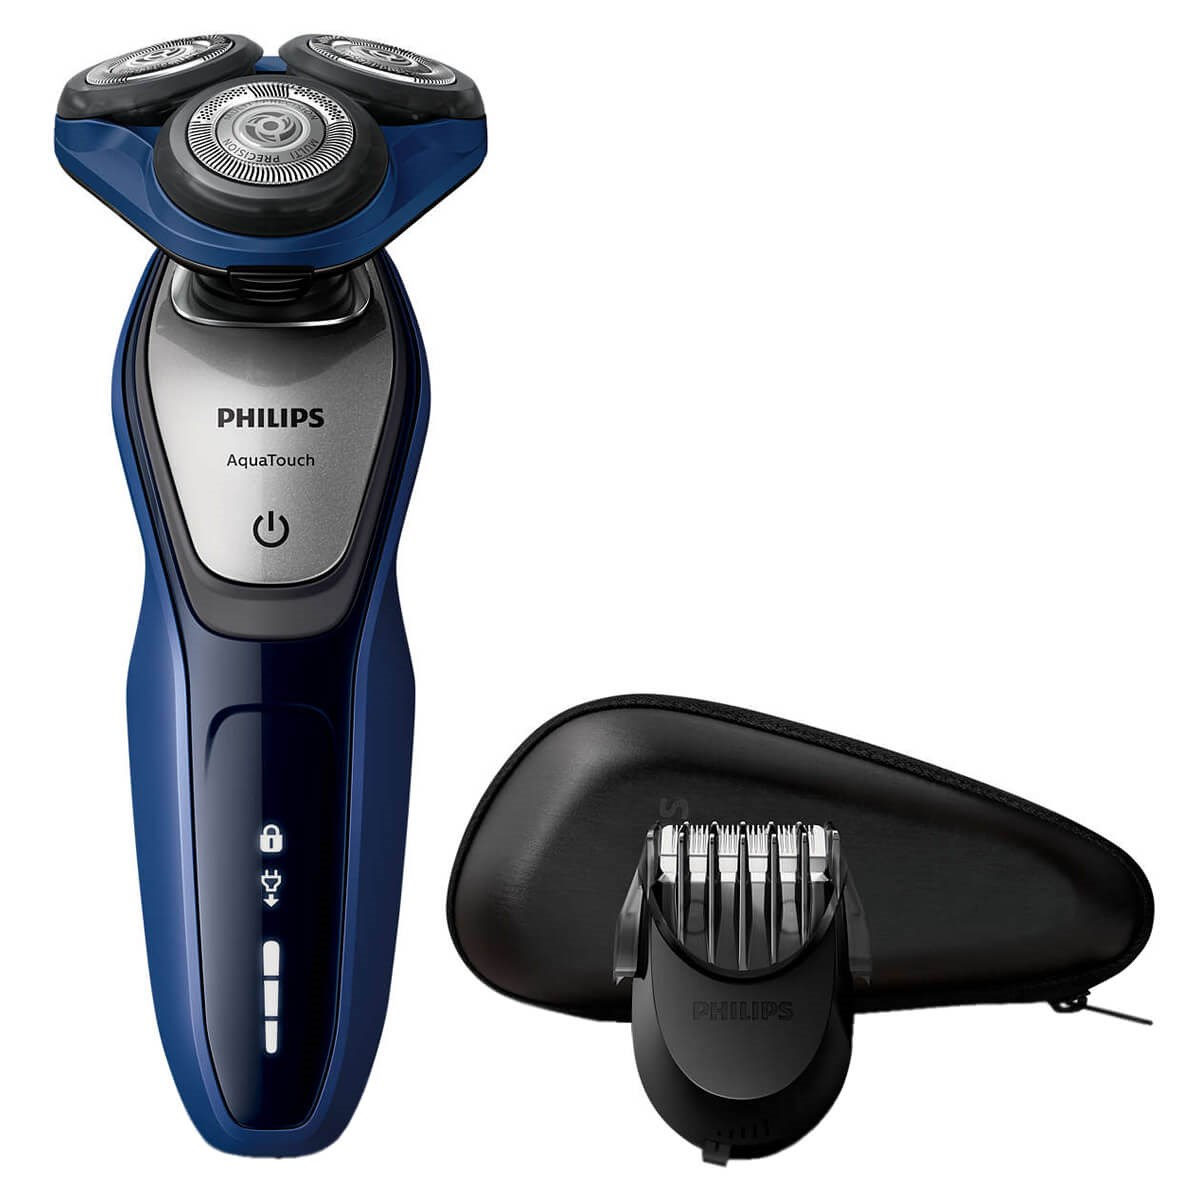 Philips Aqua Touch Wet & Dry Shaver (S5600/41)